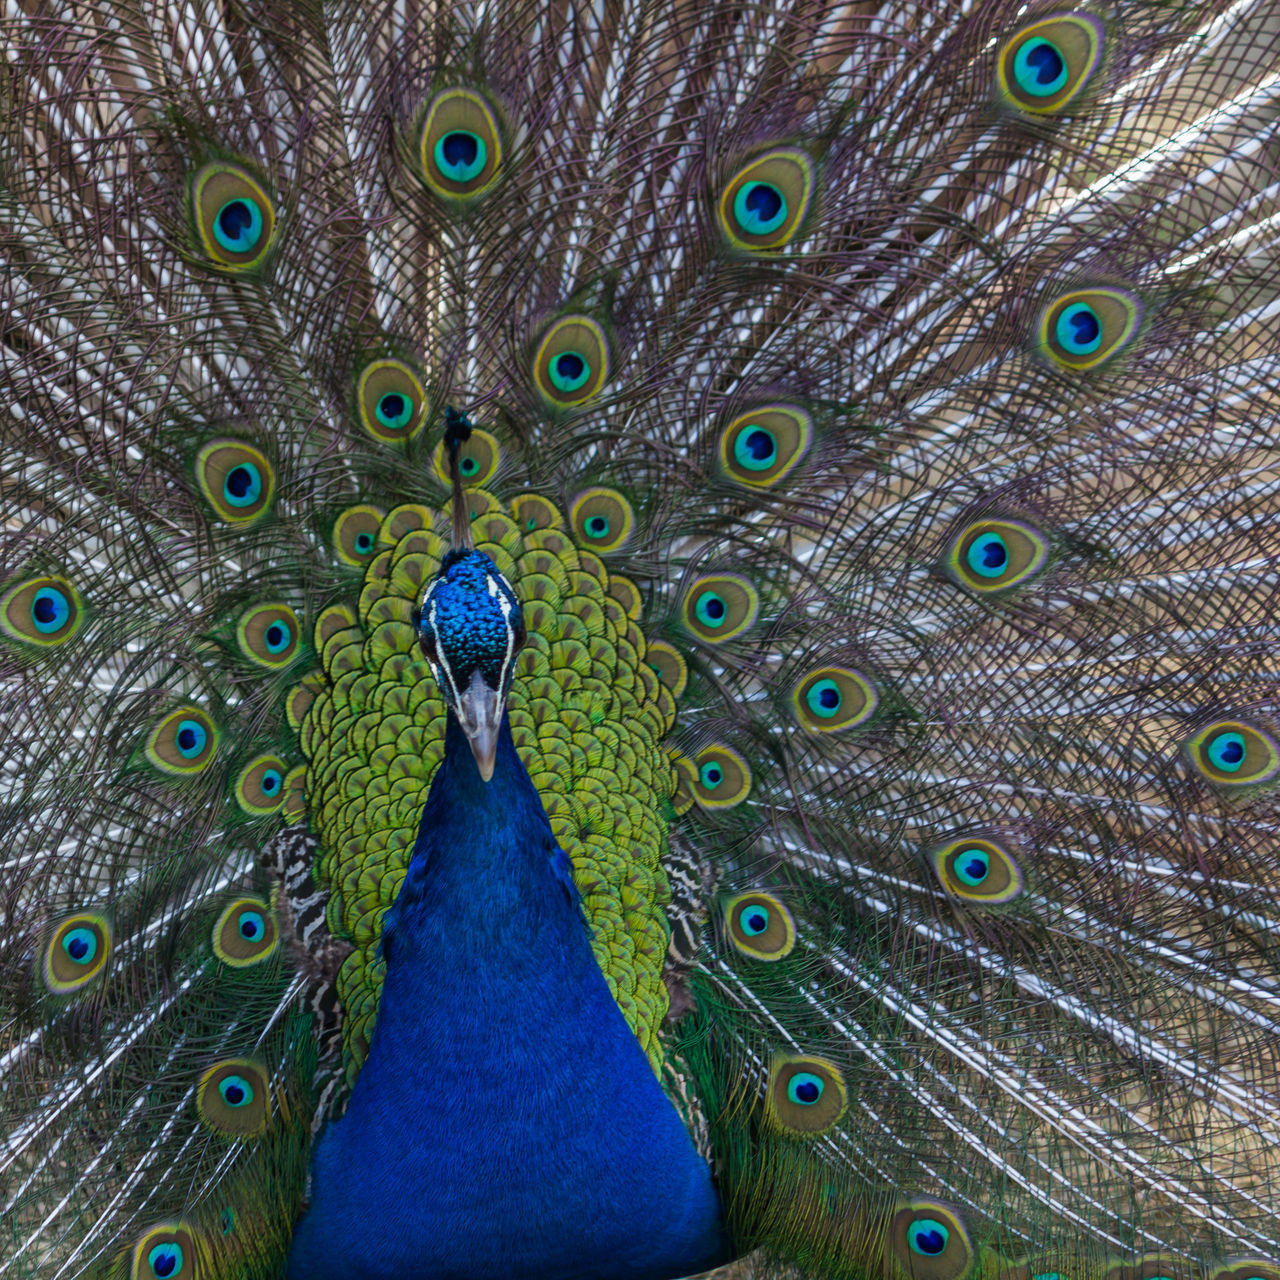 Animal Animal Themes Animal Wildlife Animals In The Wild Beauty In Nature Beauty In Nature Bird Blue Close-up Day Fanned Out Feather  Nature Nature No People One Animal Outdoors Peacock Peacock Blue Peacock Feather Peacock Feathers